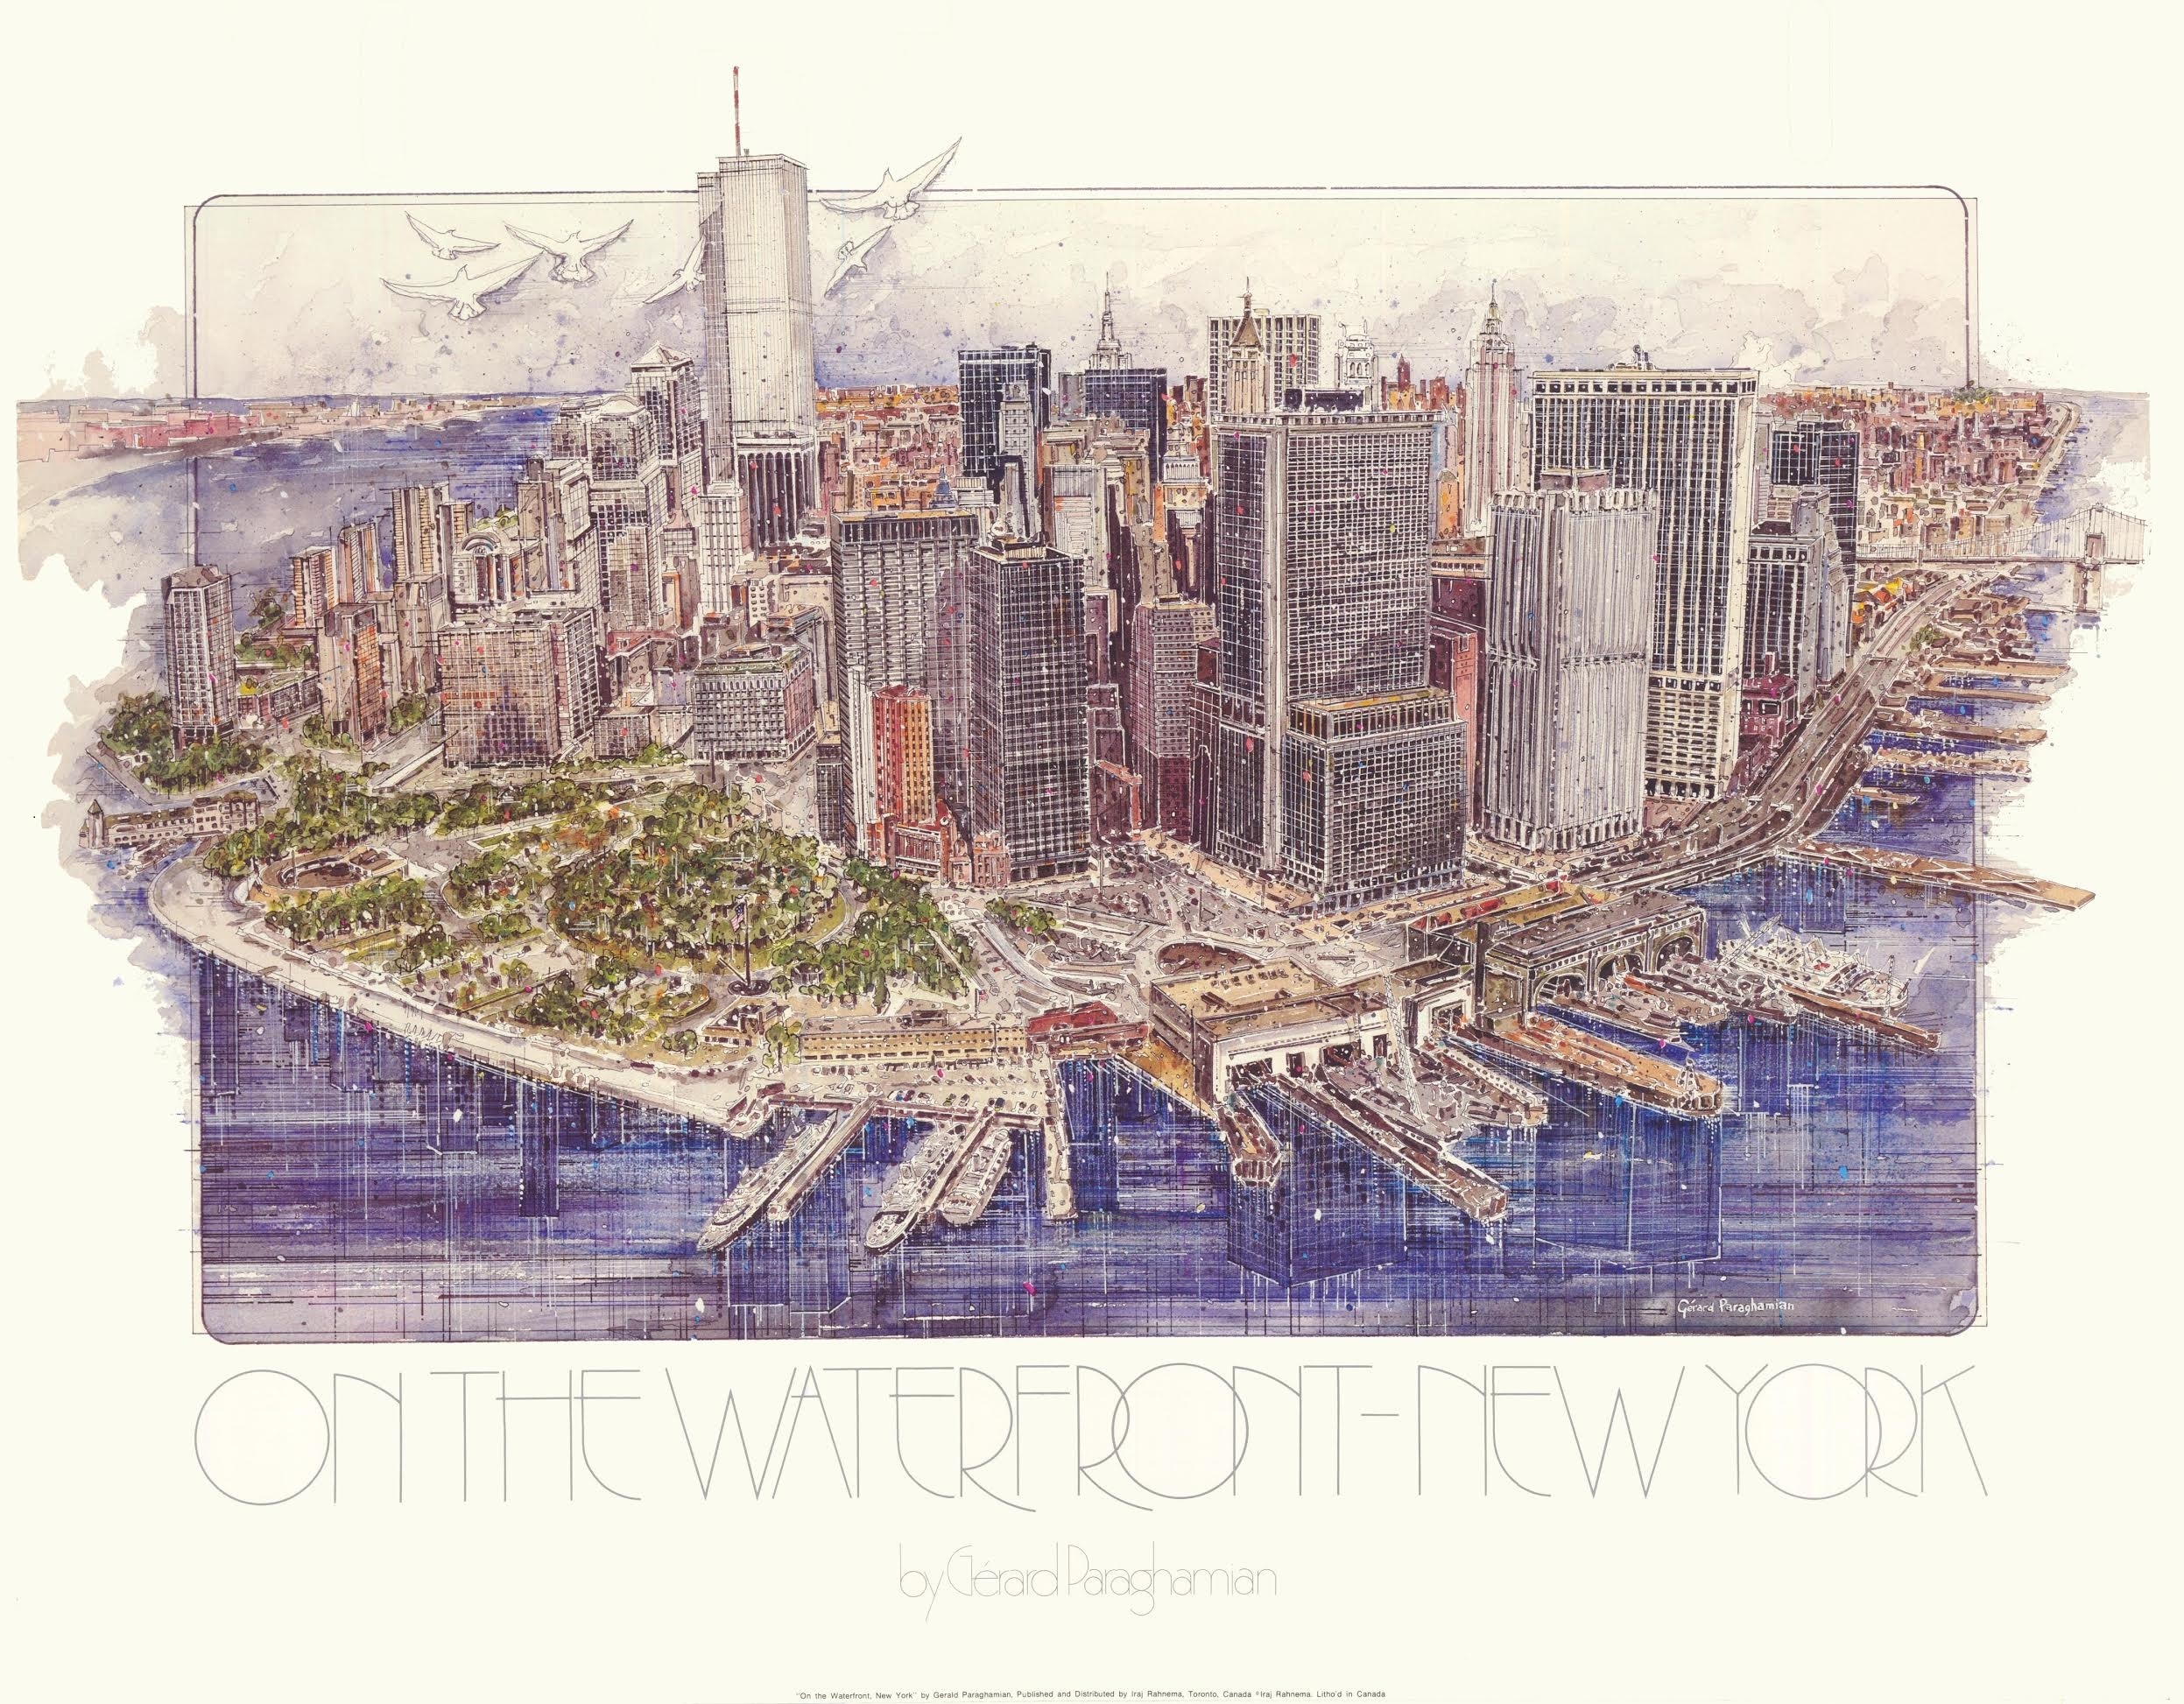 Special Pre -September 11 Art Donated To Interagency Council